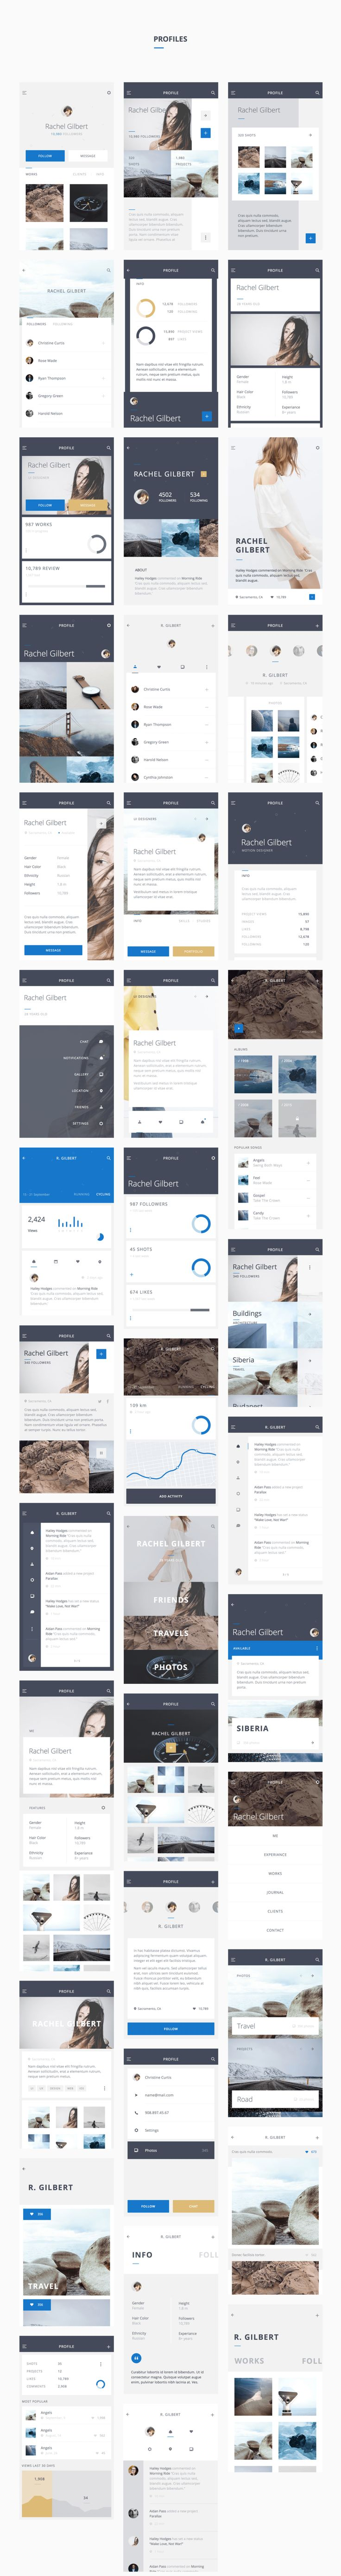 Thunder UI Kit This isreally great, please check me out here http://bit.ly/1S8zm3Q